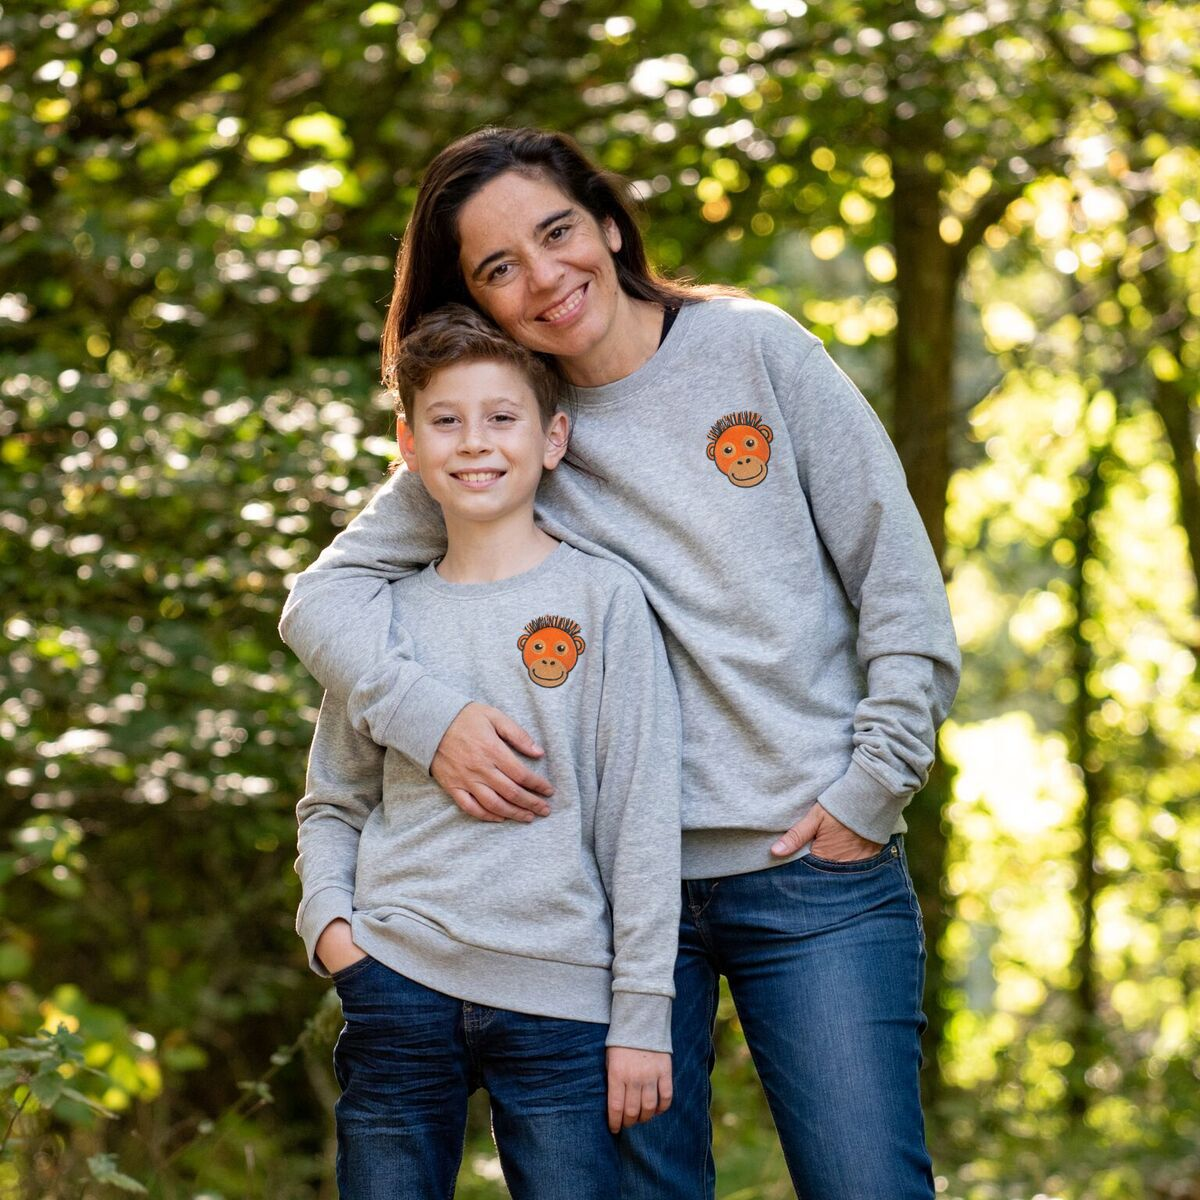 T+L-Orangutan-Adult+Child-Sweatshirts.jpg